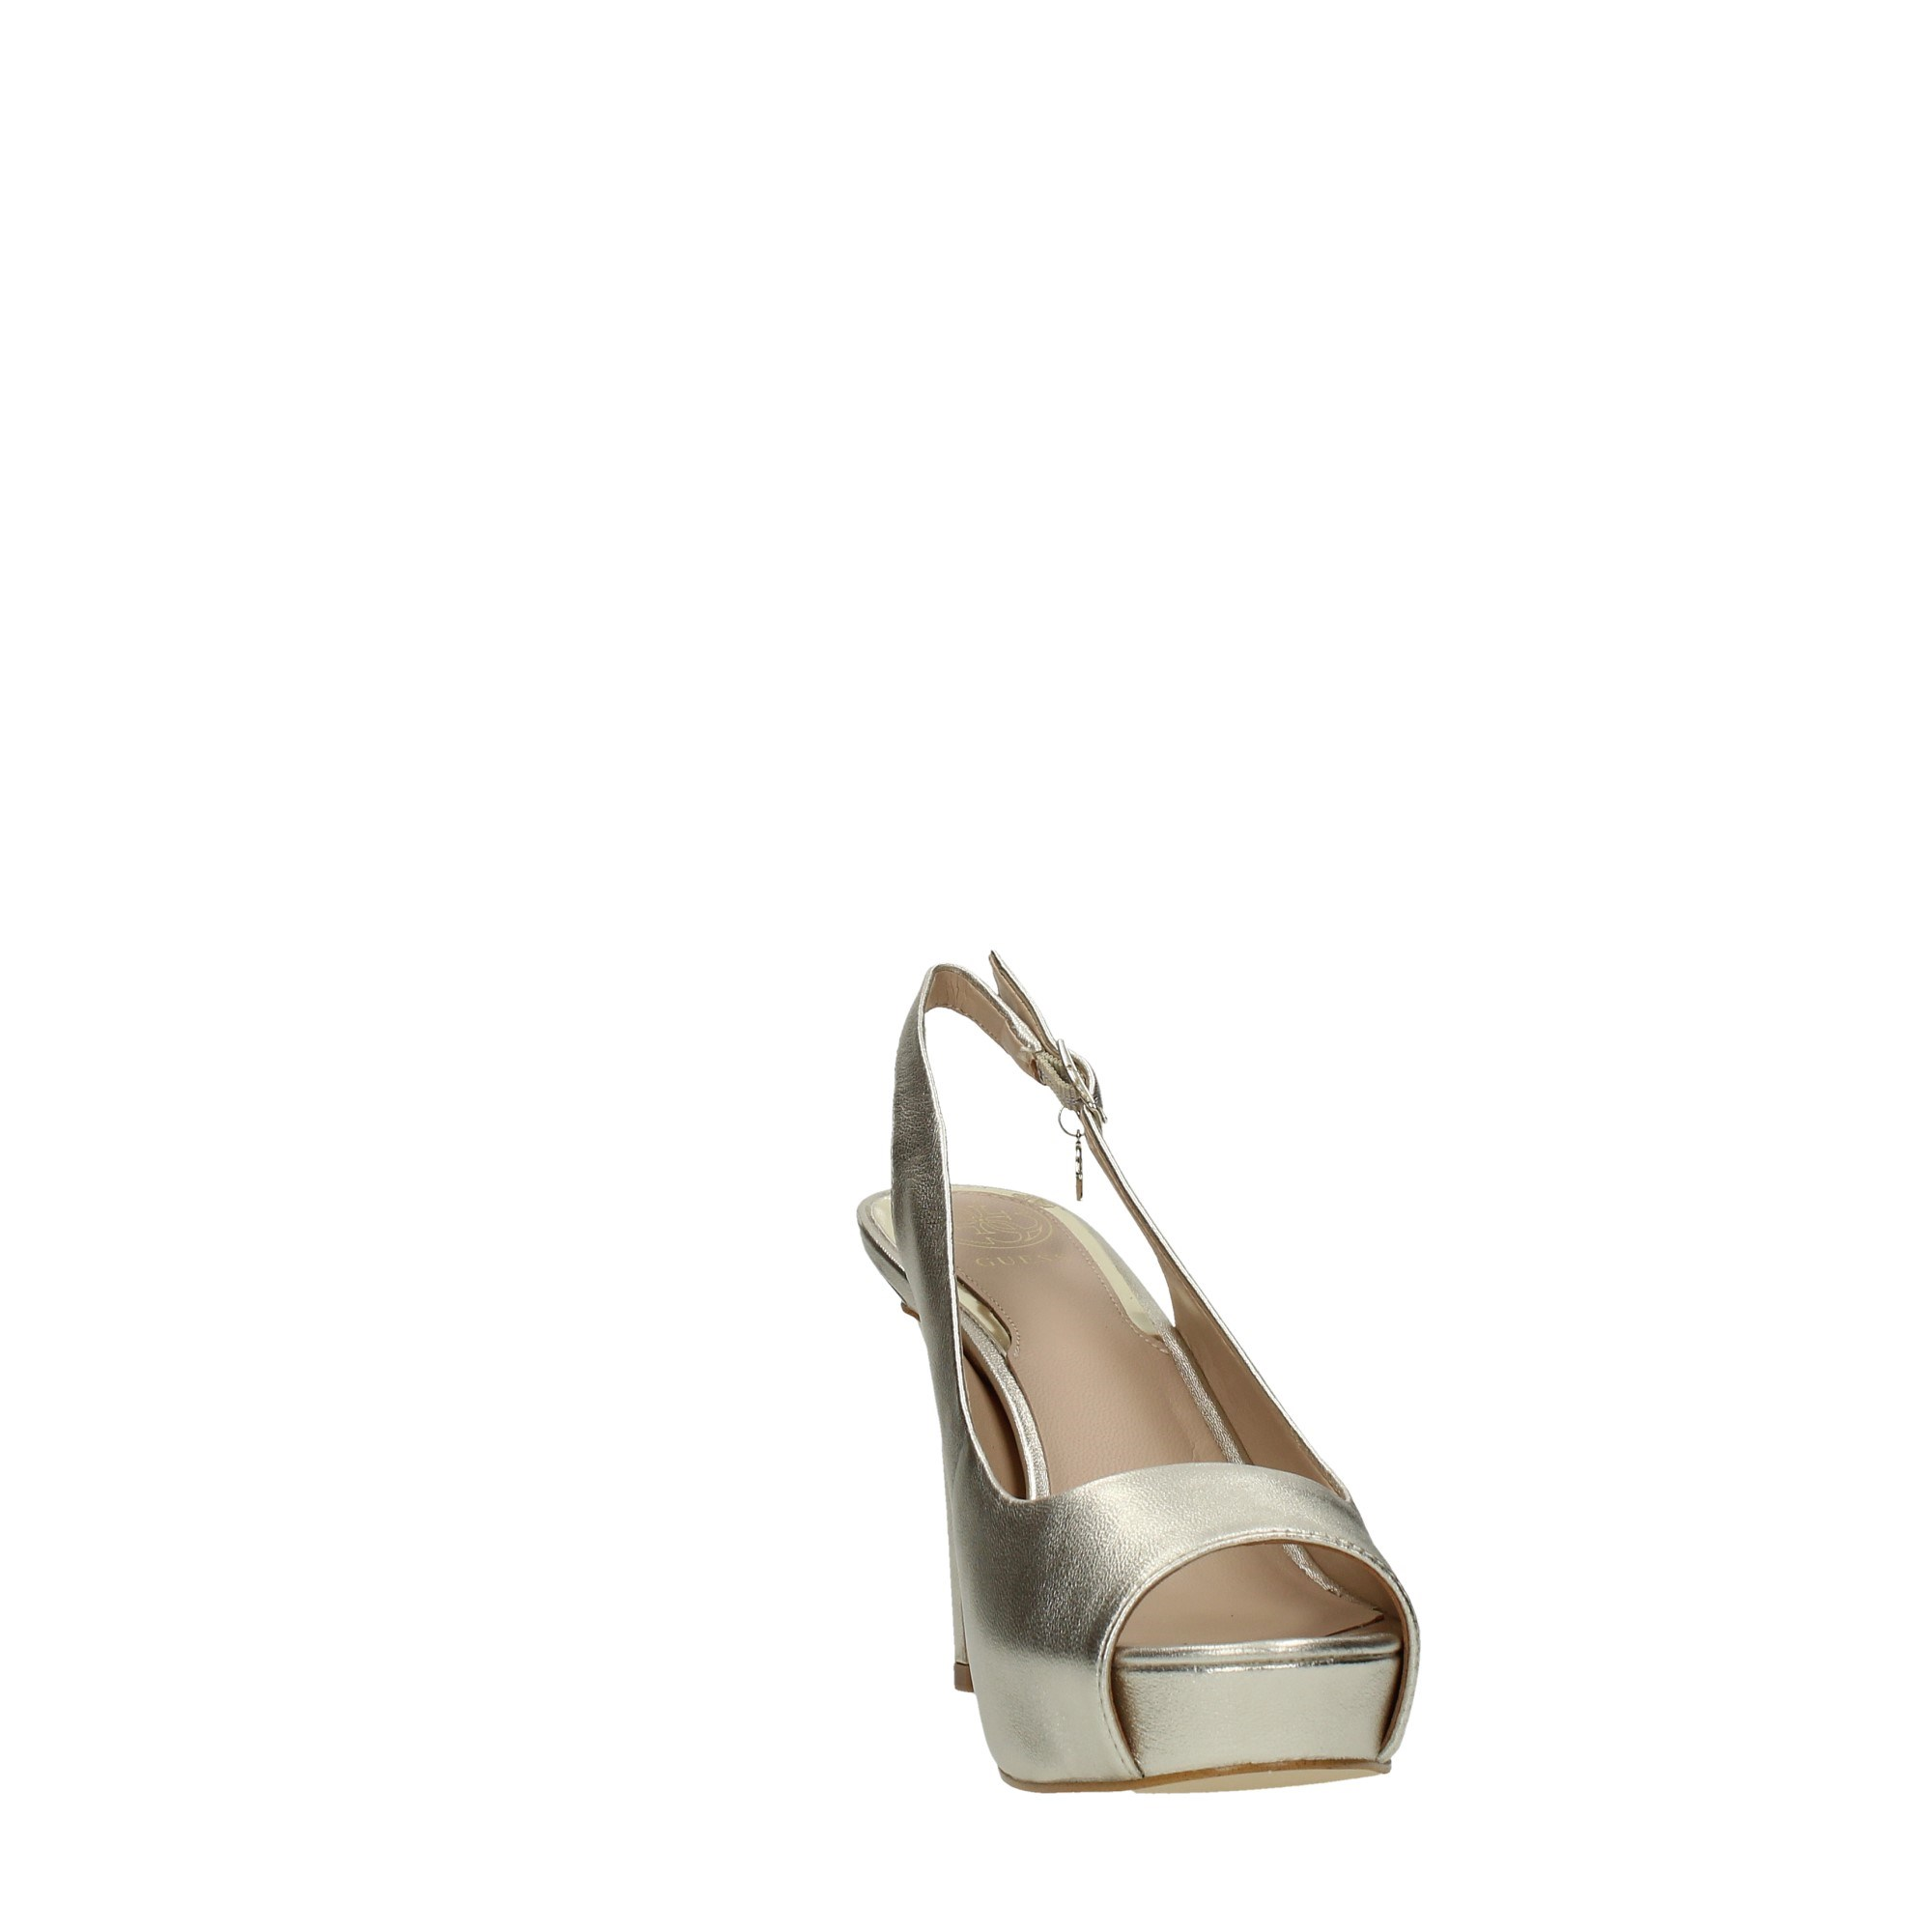 Guess Shoes Women Sandals Platinum FL5DDI